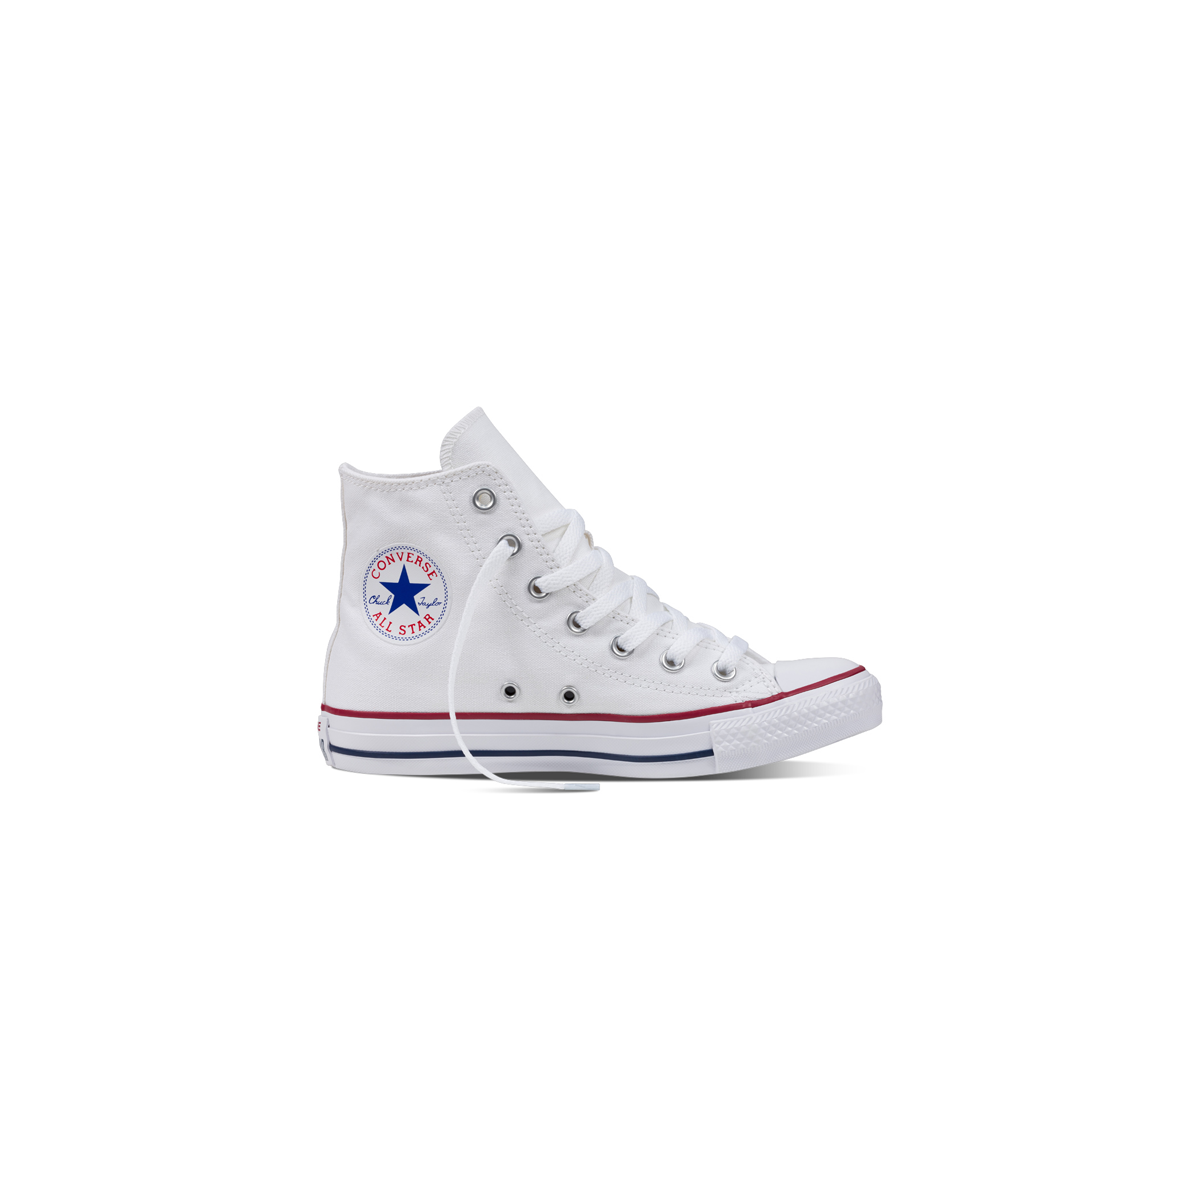 converse blanche pointure 38